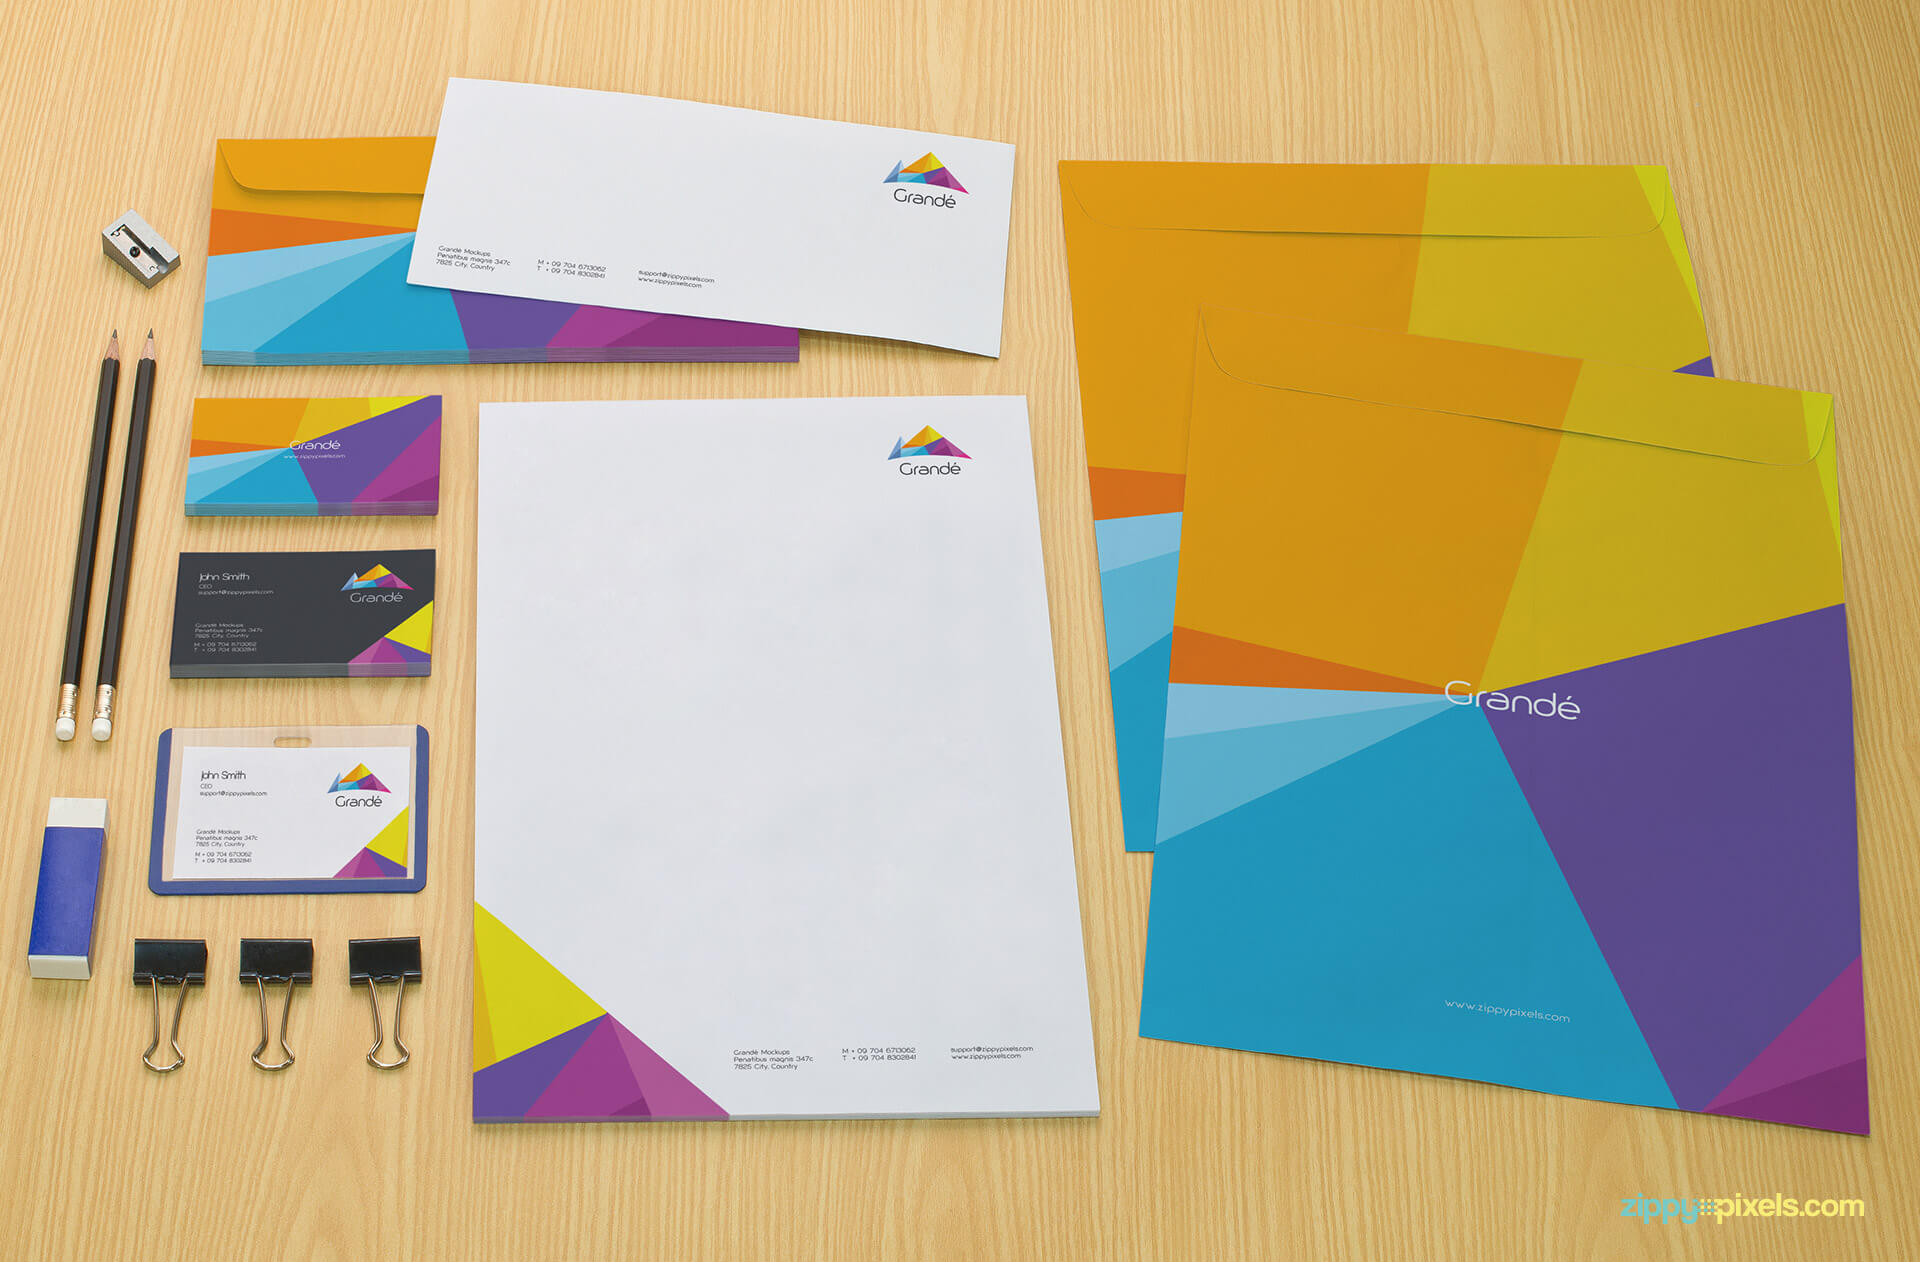 Letter Envelopes, Large Envelopes, Letterhead Branding Mockup